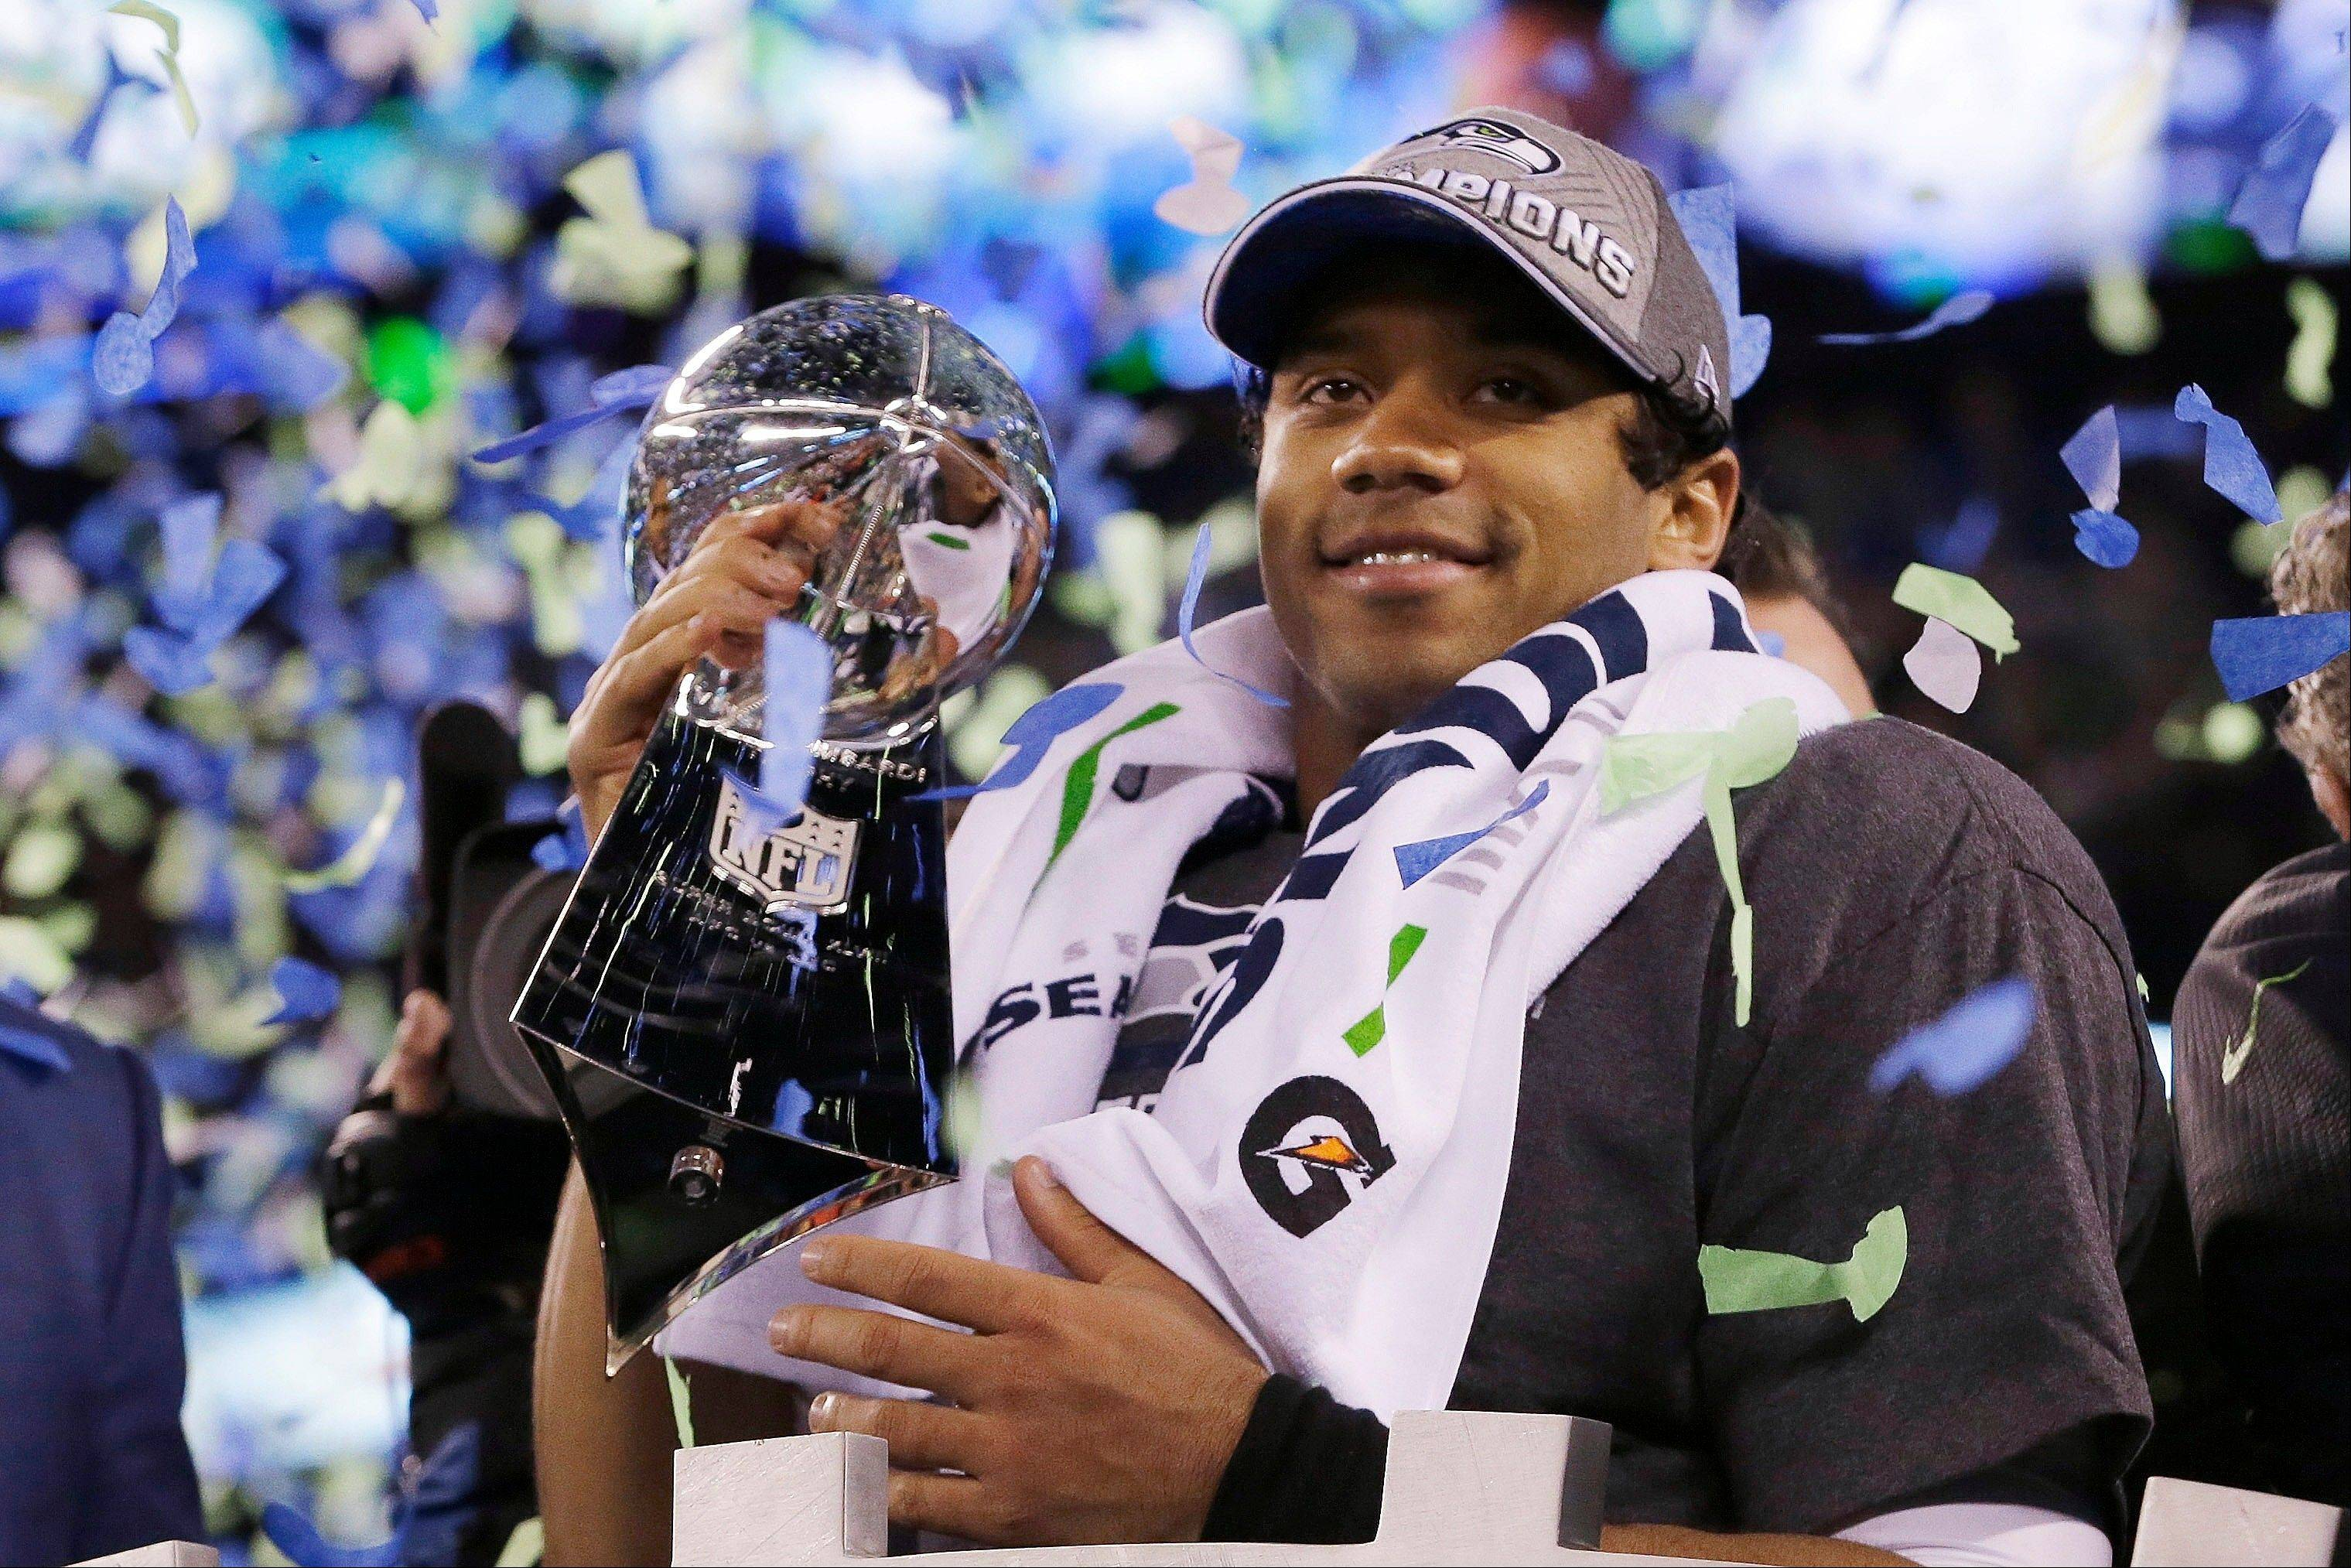 Seattle Seahawks quarterback Russell Wilson holds the Lombardi Trophy after the NFL Super Bowl XLVIII football game Sunday, Feb. 2, 2014, in East Rutherford, N.J. The Seahawks won 43-8.